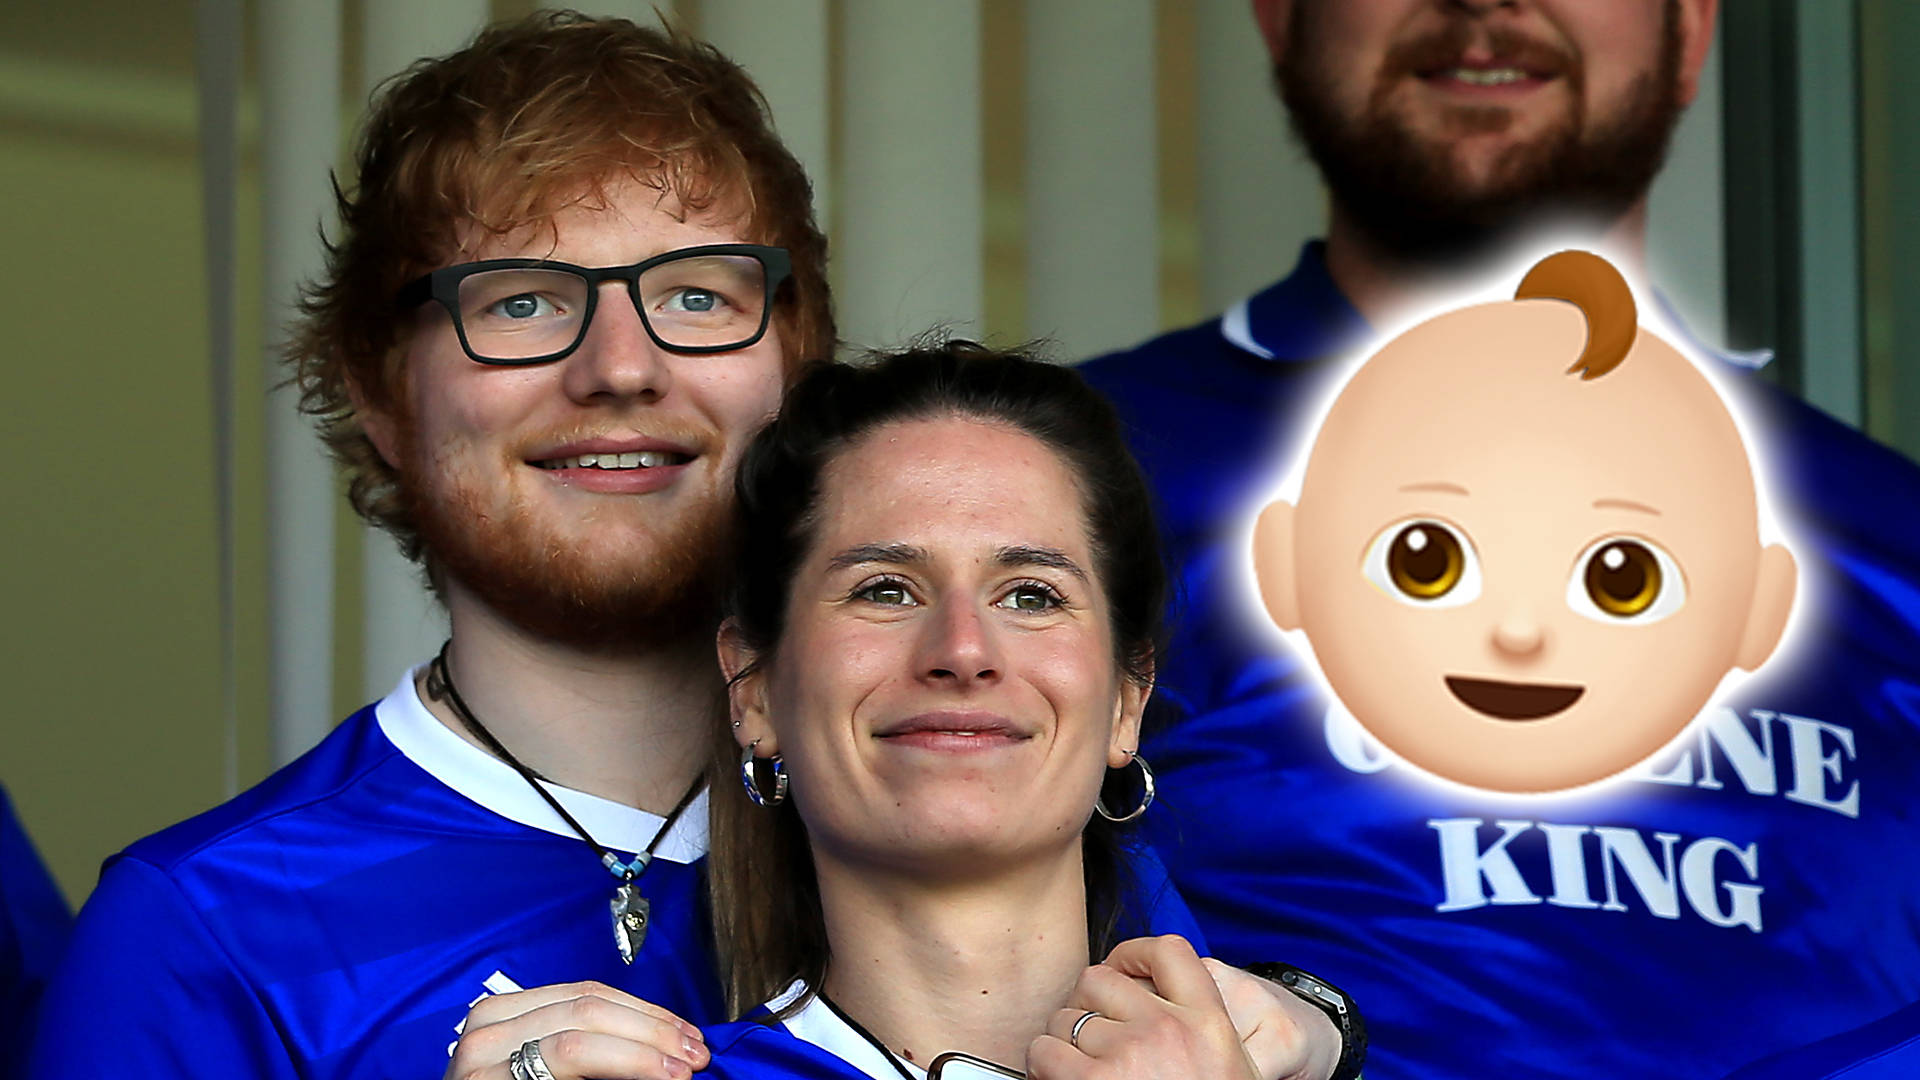 Ed Sheeran S Wife Cherry Seaborn Pregnant With Their First Child According To Reports Capital